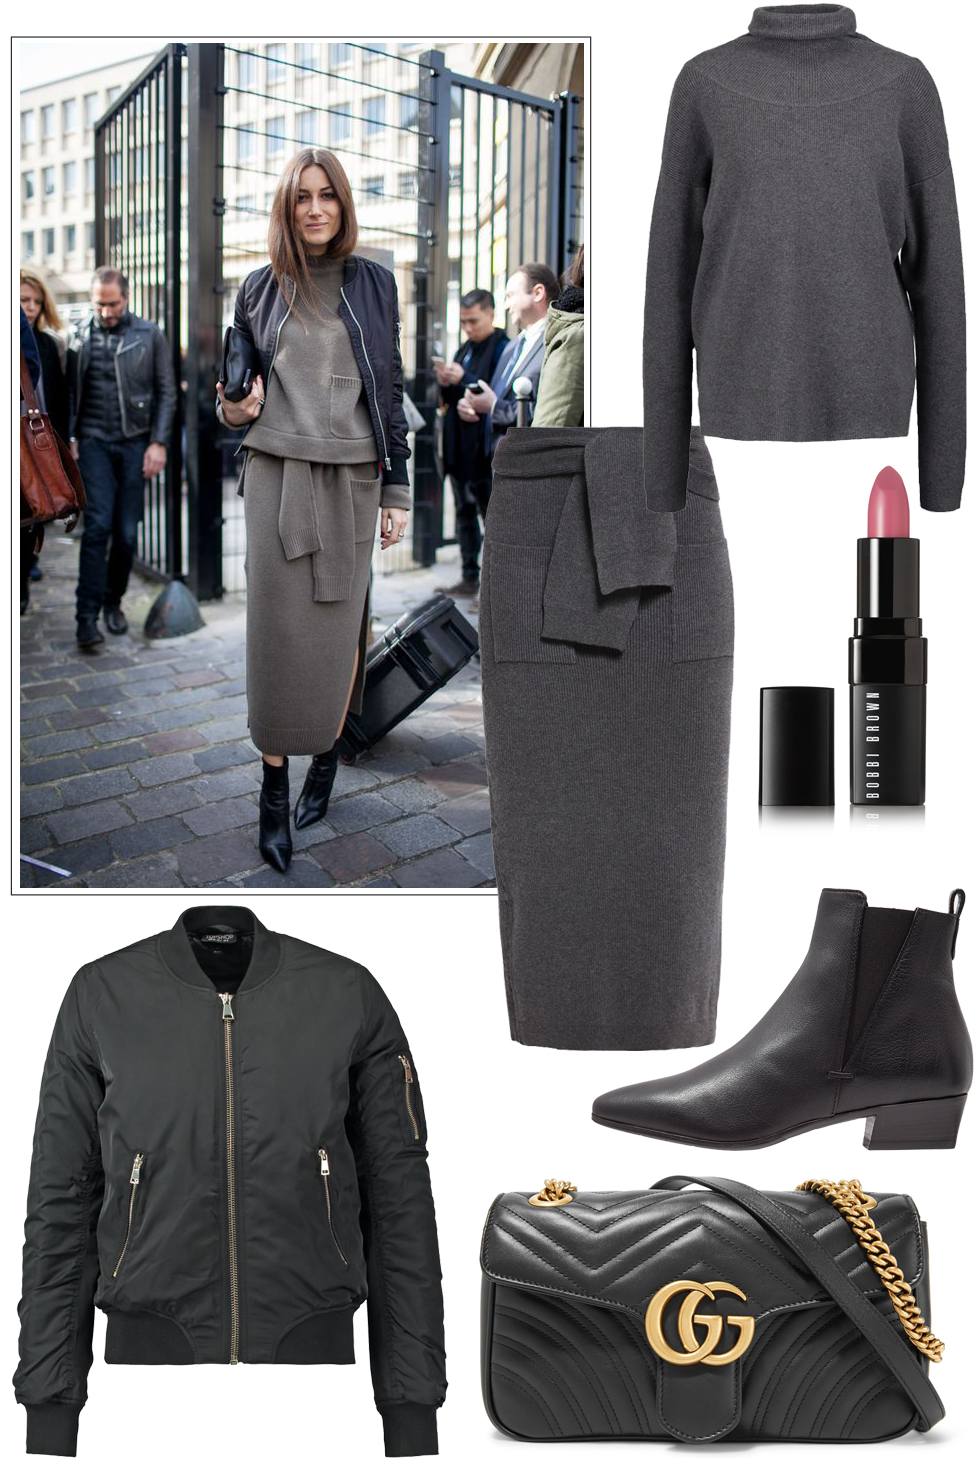 Shopping, WIshlist, TopShop, Gucci, ADPT, Aquatalia, Bobbi Brown, trend, fashion, copy the look